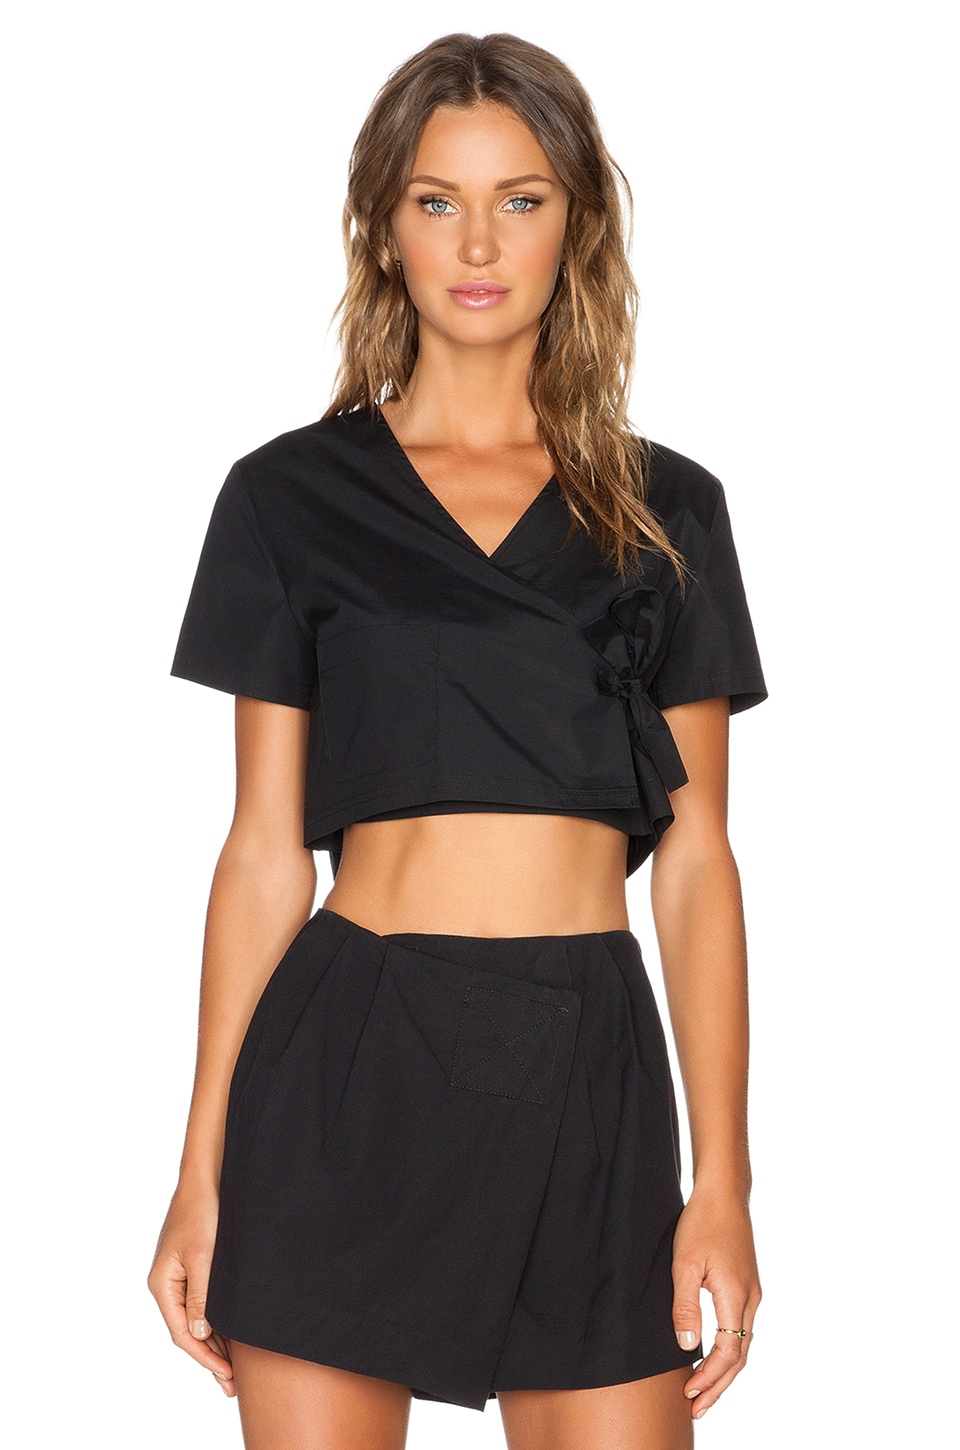 Marc by Marc Jacobs TOP CORTO